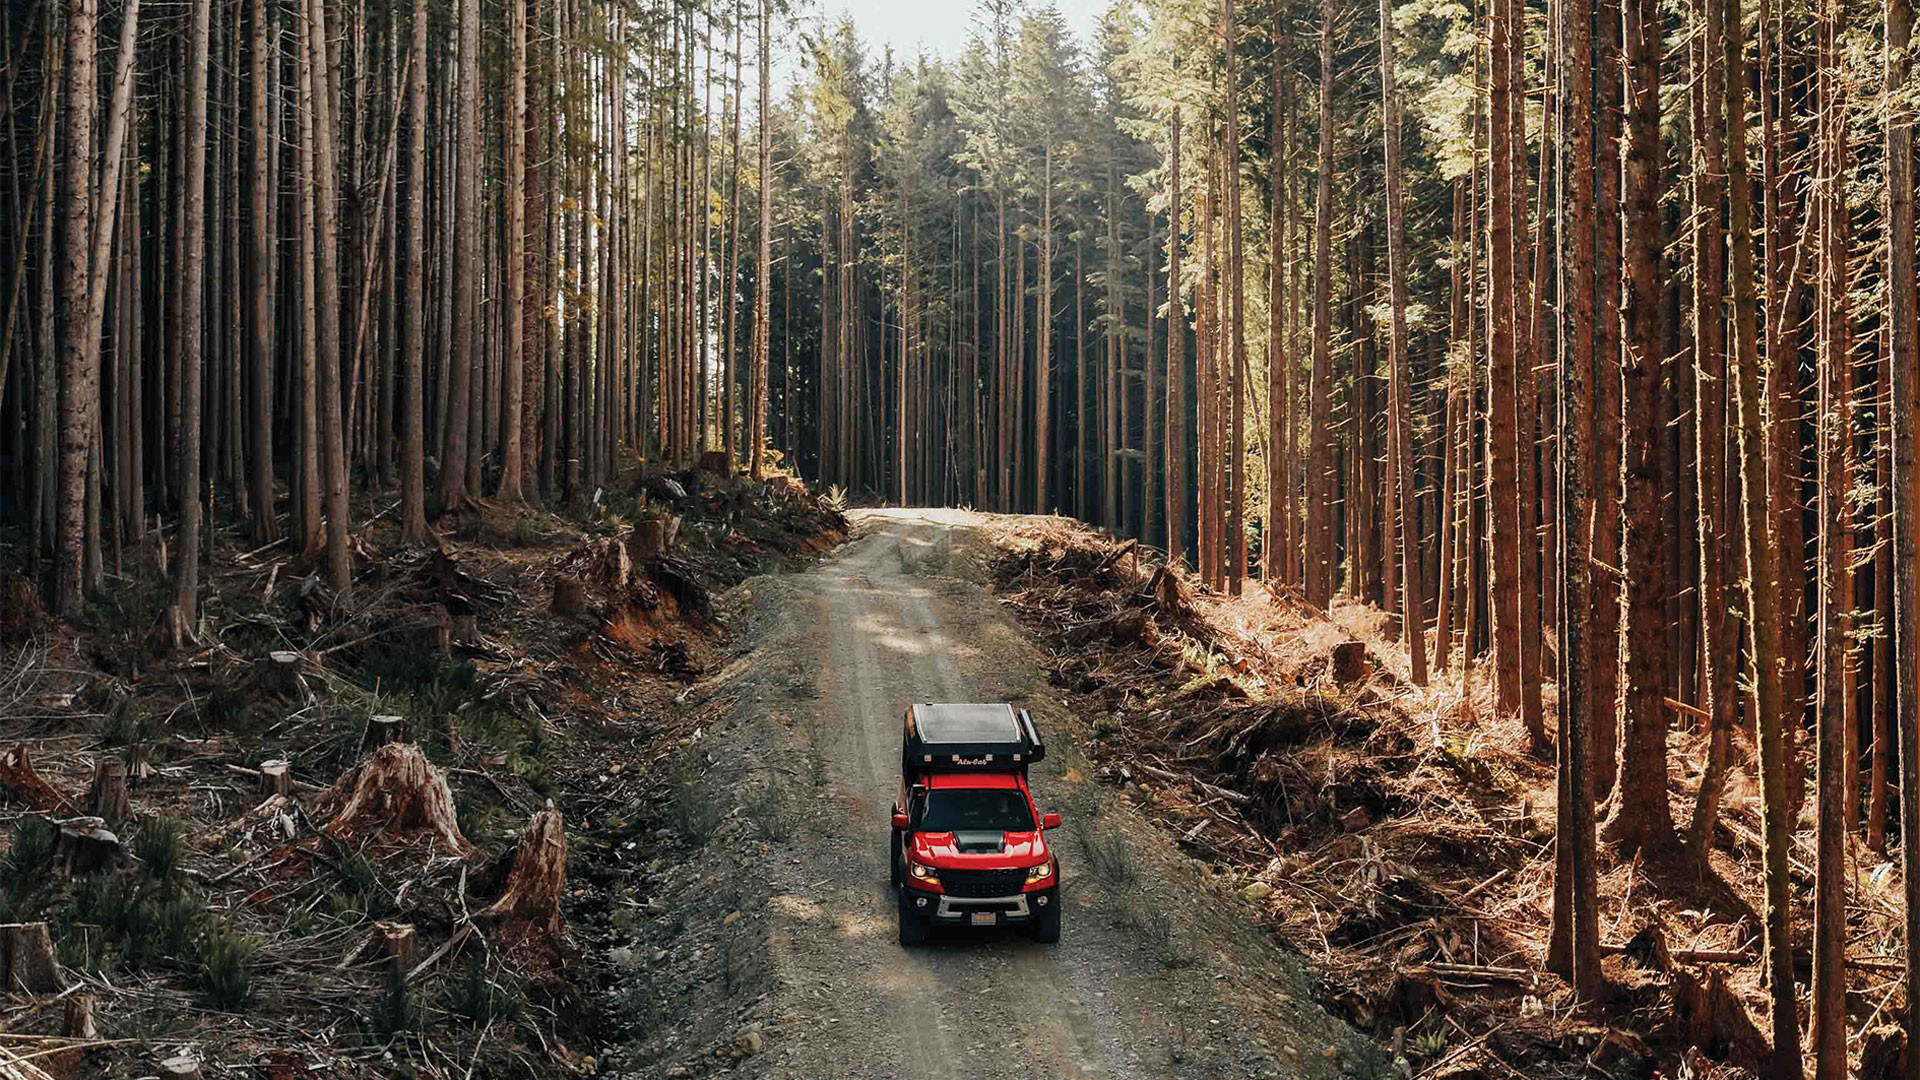 Gears of Travel, Canadian adventure | Chevrolet with canopy camper in forest